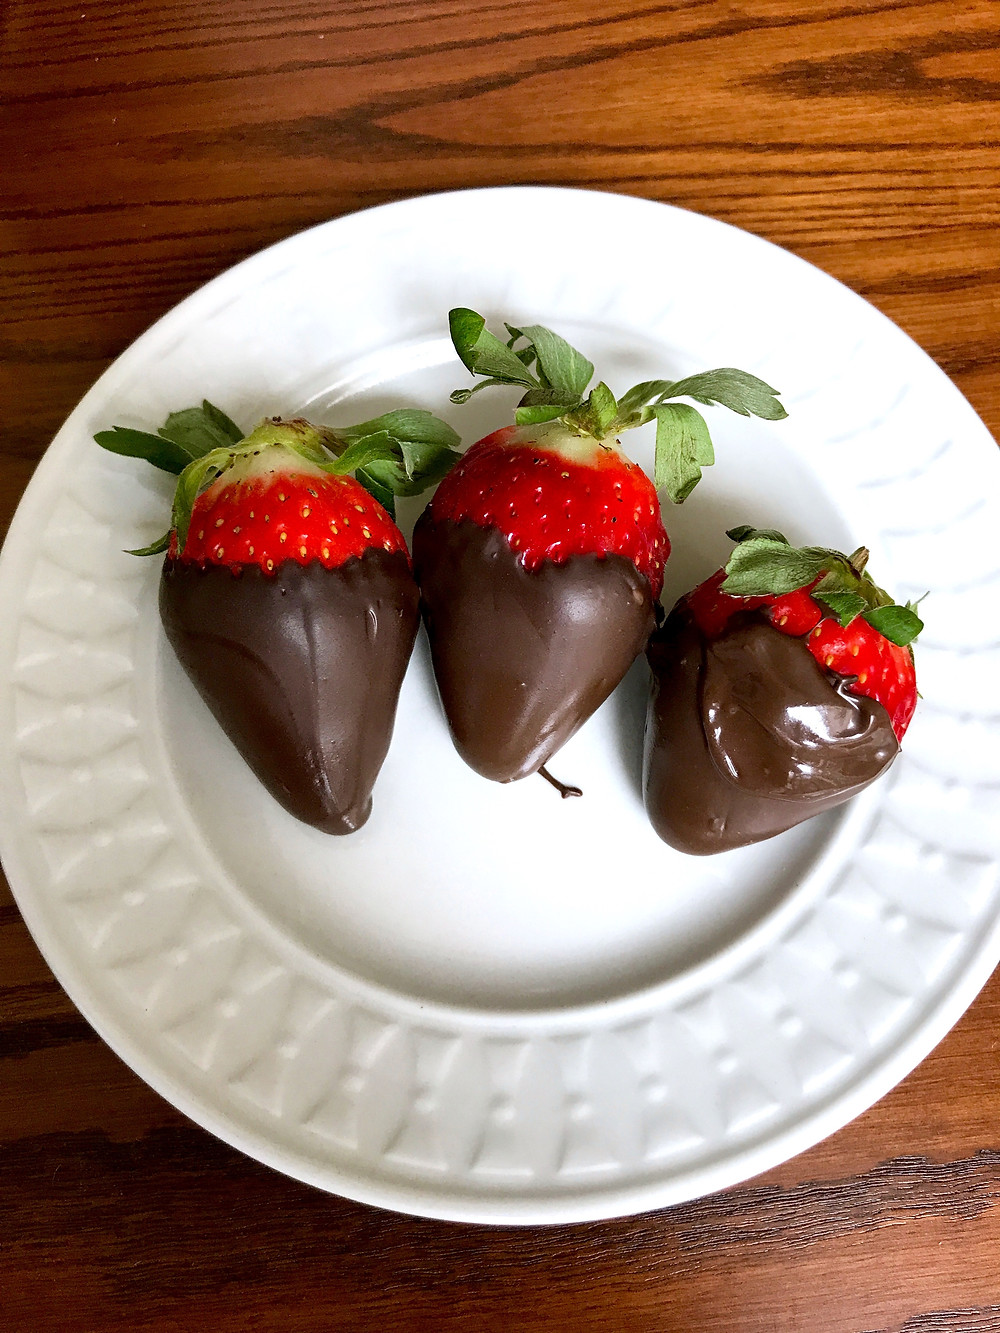 A plate of three chocolate covered strawberries.